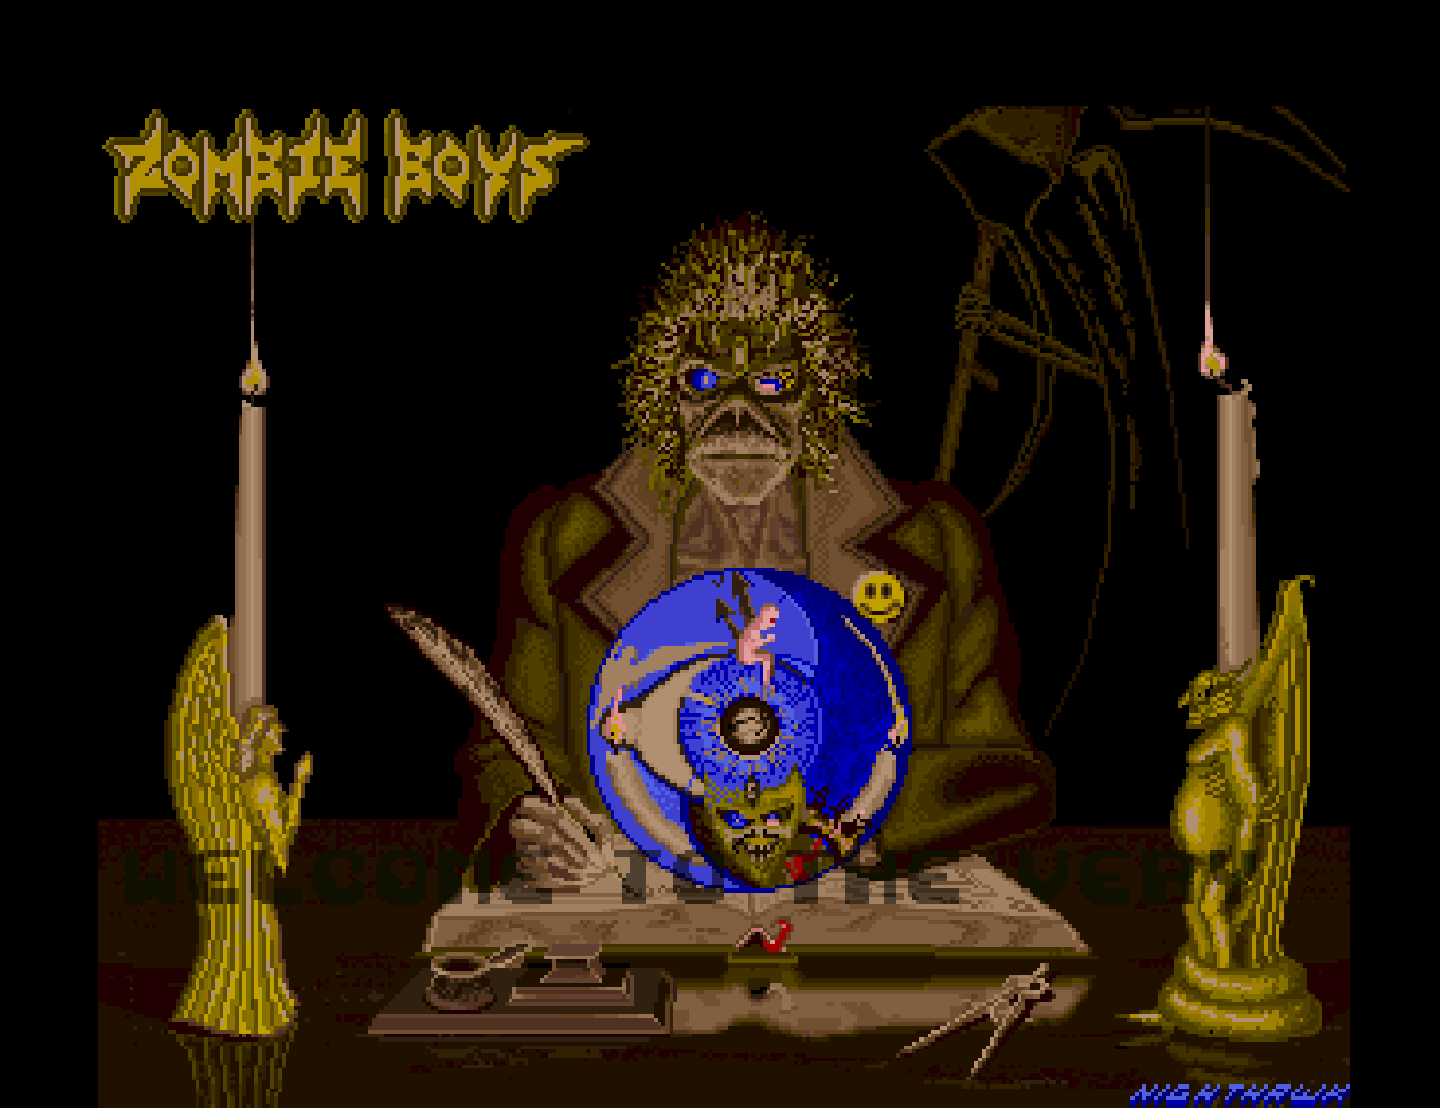 Amiga screenshot: Zombie Boys, Heavy Metal Demo